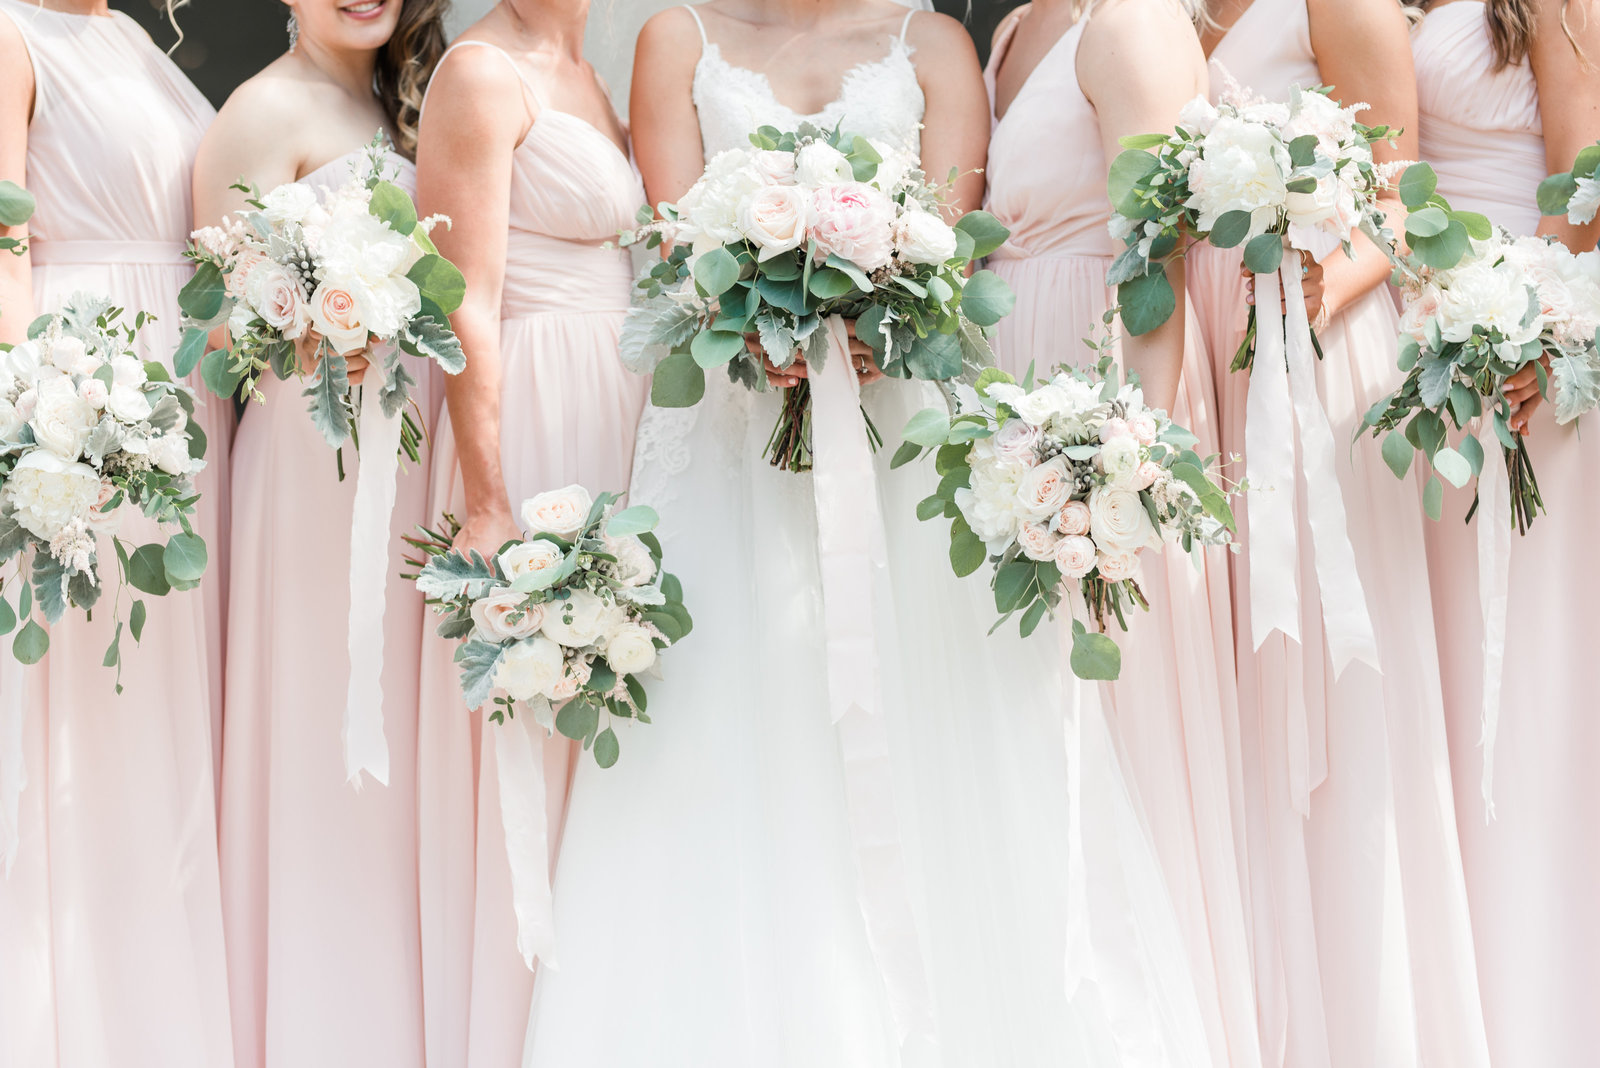 virginia-wedding-blush-bridesmaids-peony-bouquets-photo127